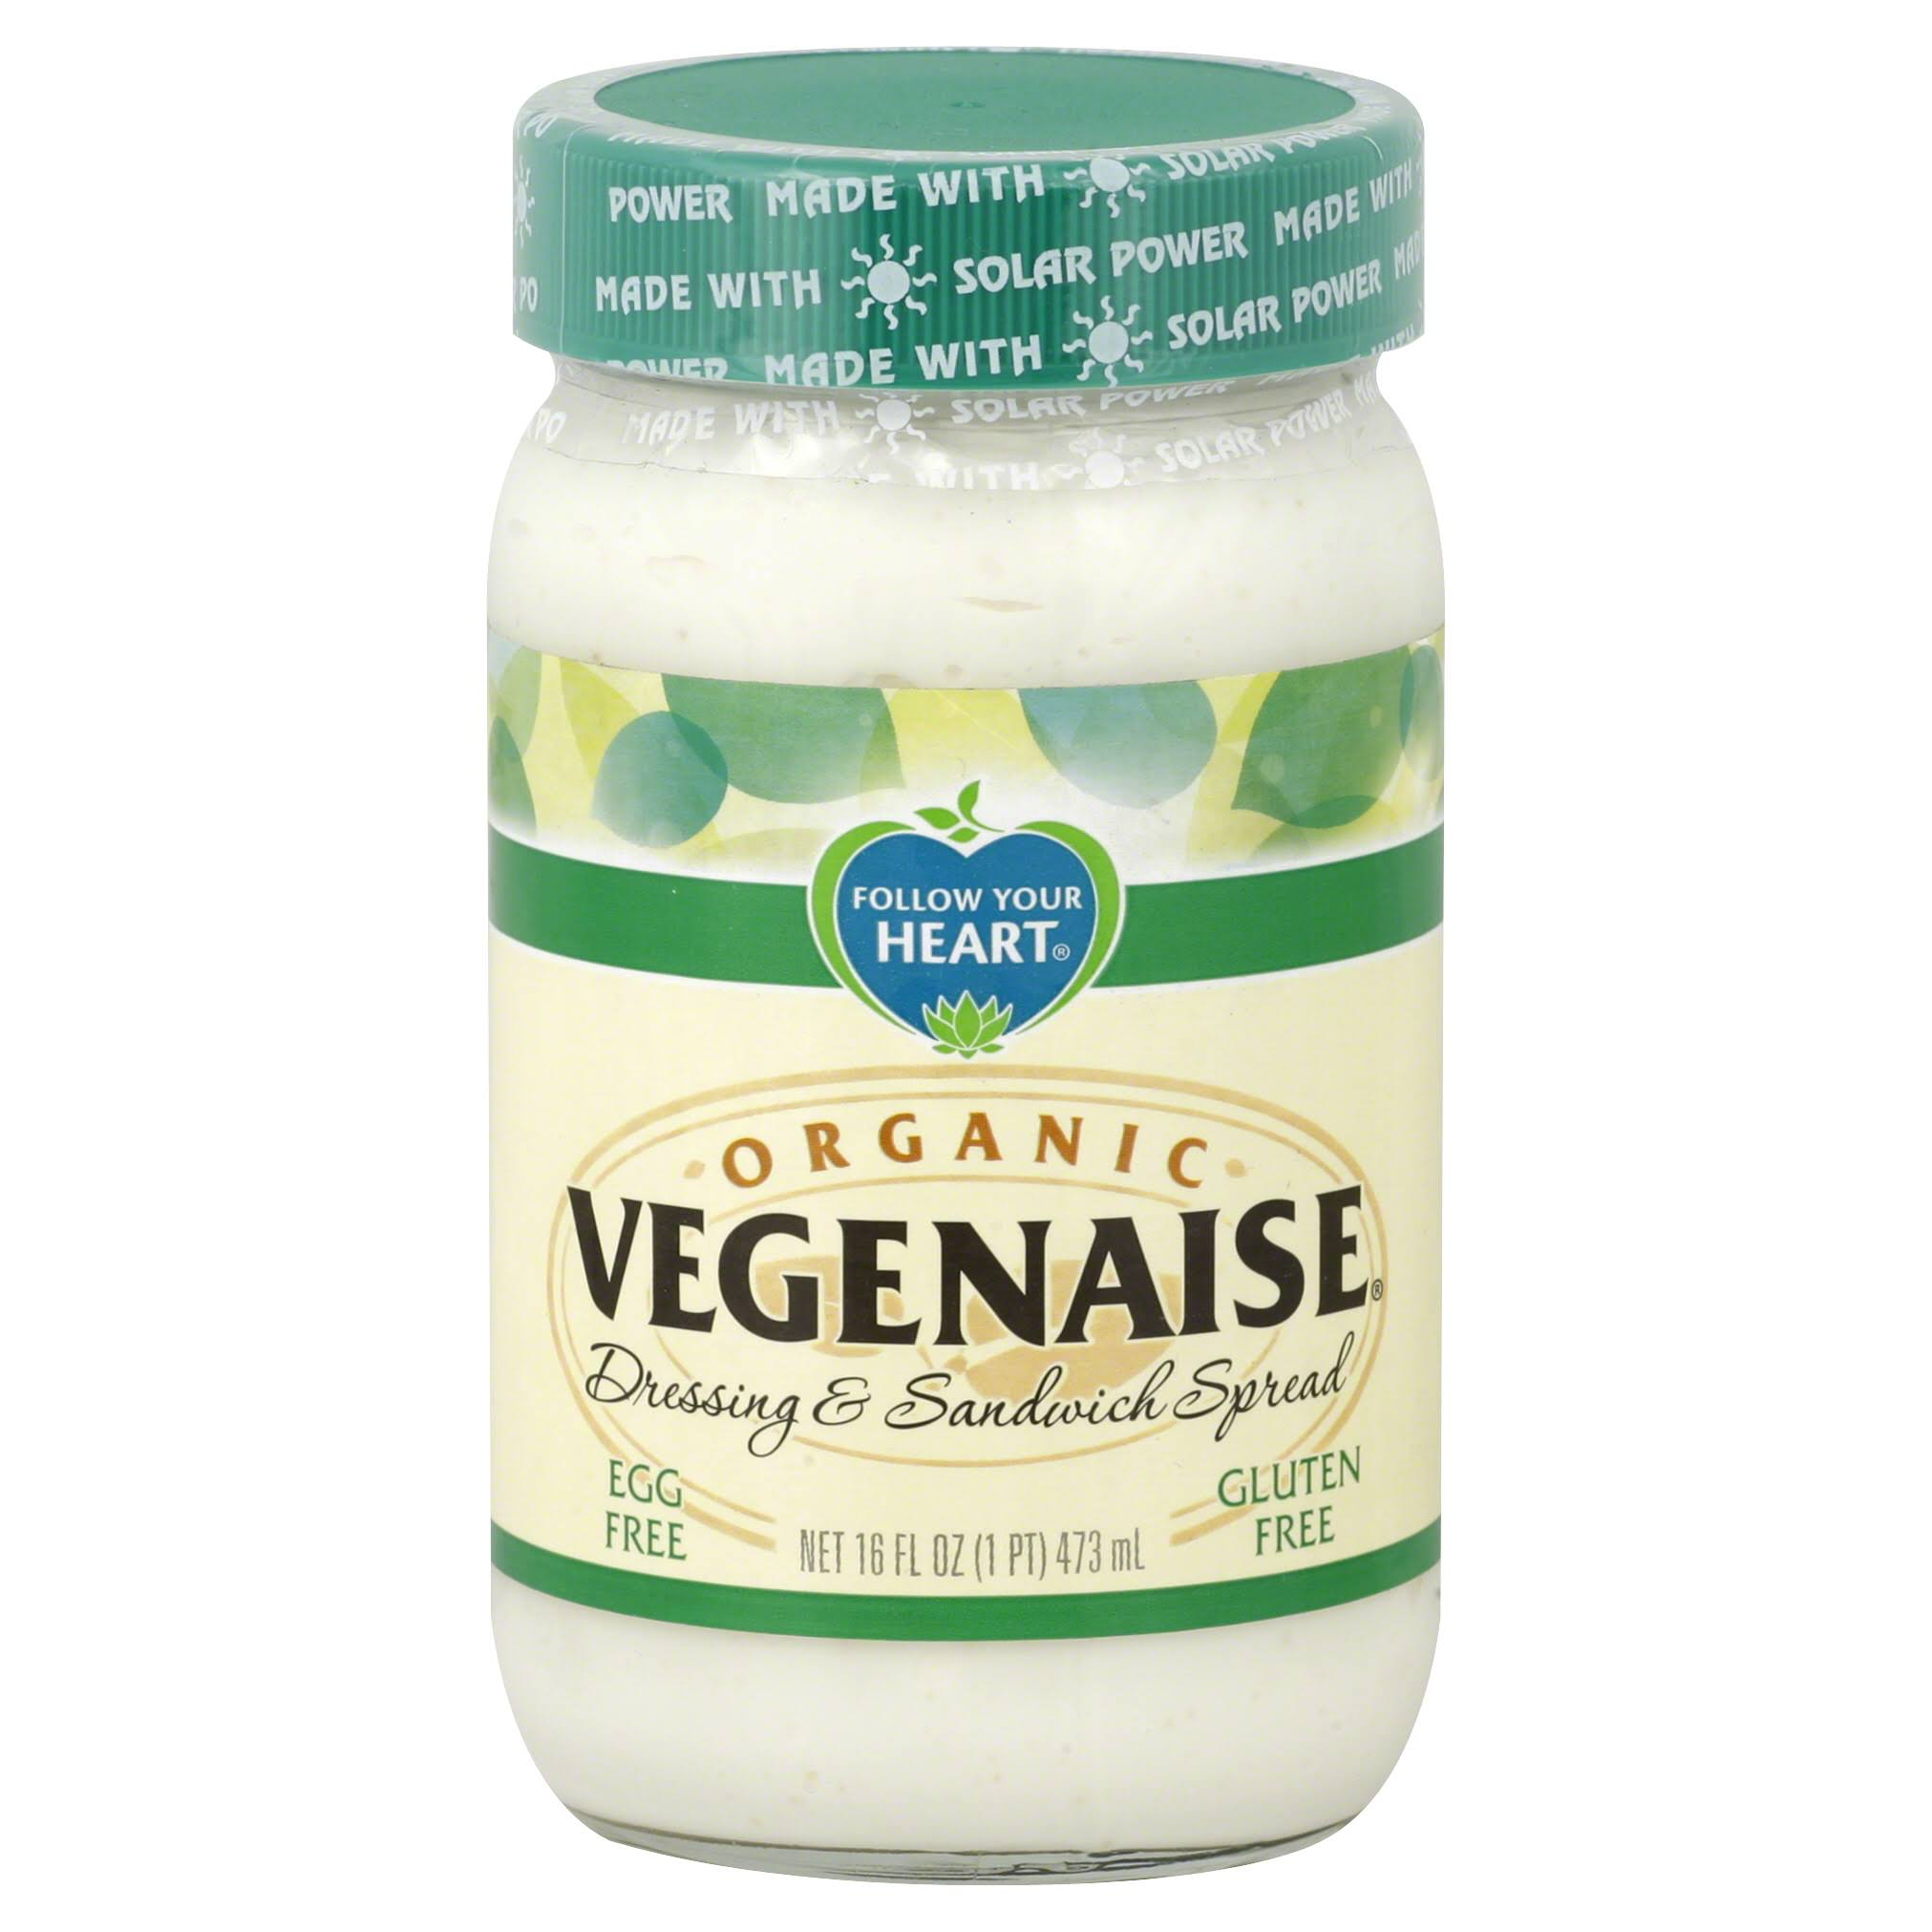 Follow Your Heart Vegenaise Dressing & Sandwich Spread, Organic - 16 fl oz